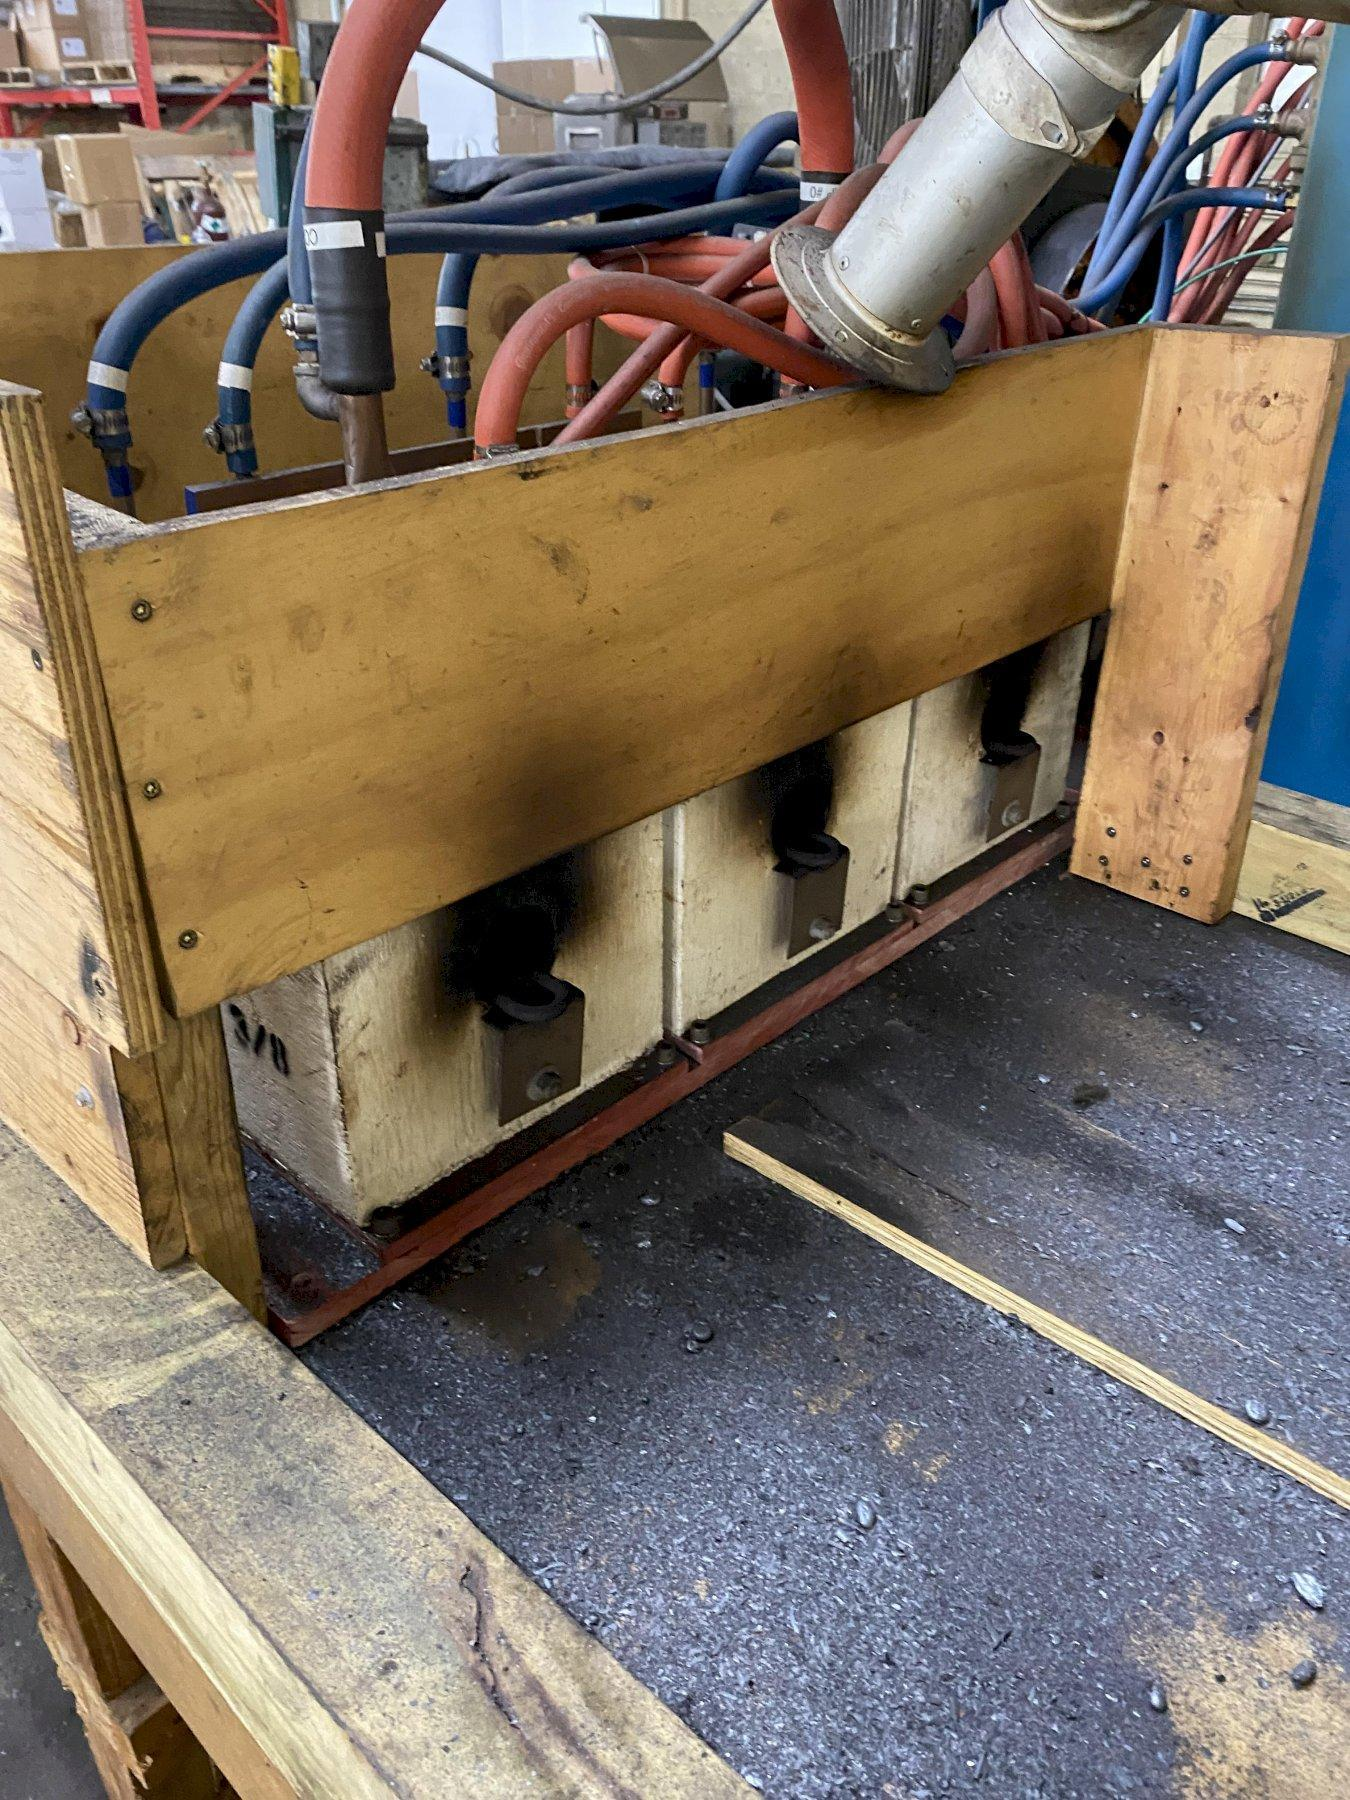 86 KVA AJAX TOCCO MODEL PACER S-10 INDUCTION HEATER & BOXES. STOCK # 0847621